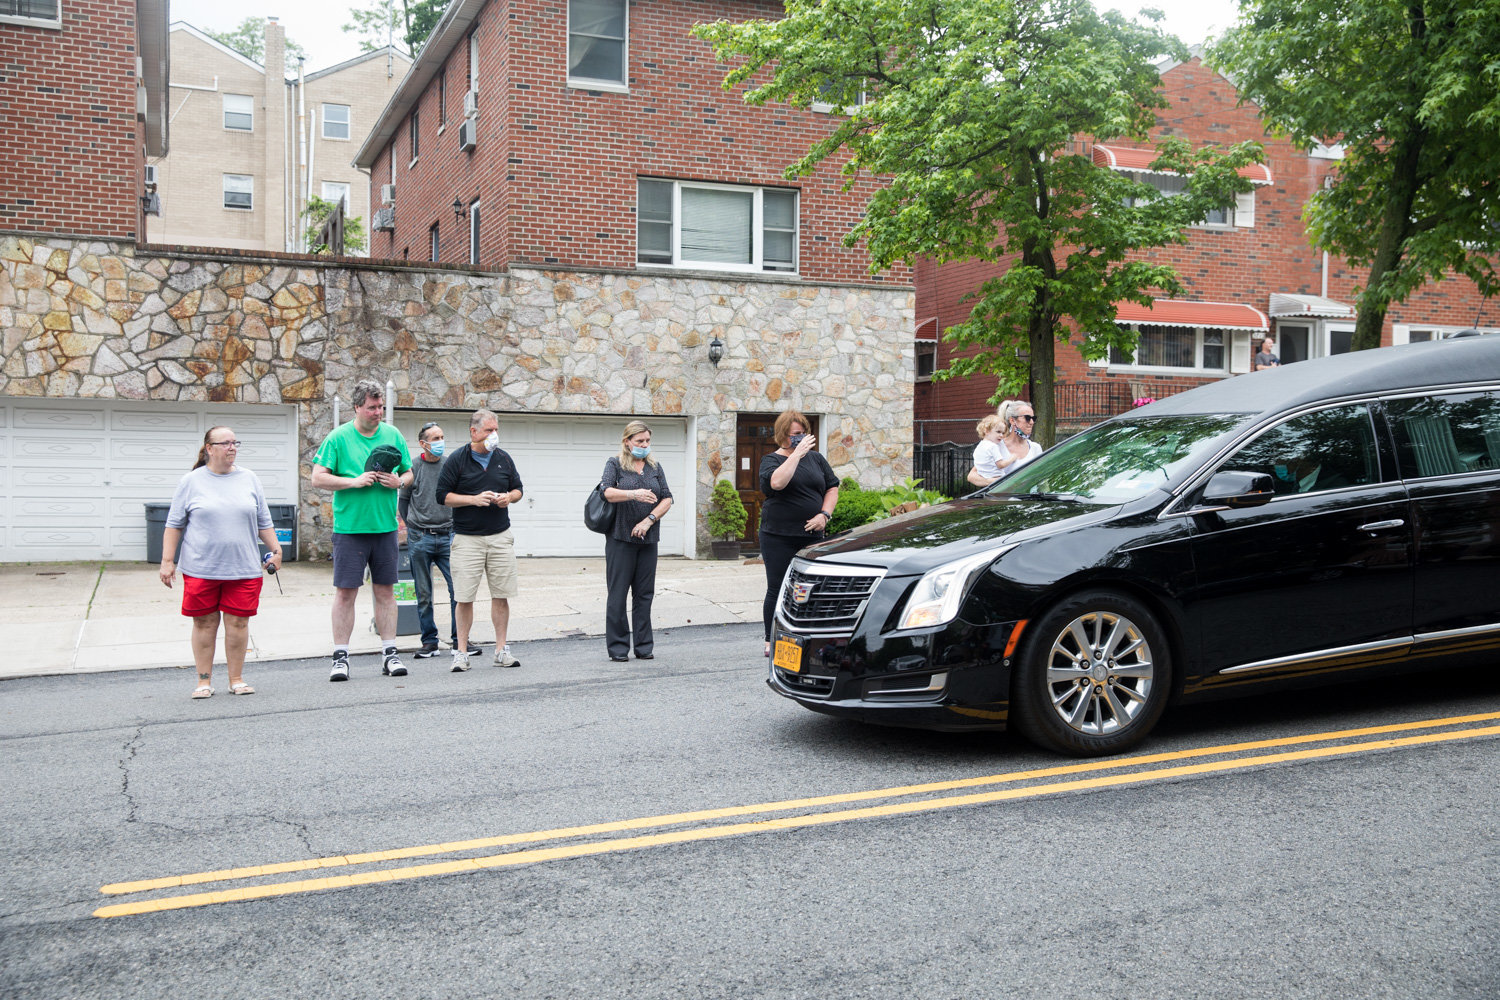 Mourners watch as a hearse carrying the late Michael Rooney makes its way down Mosholu Avenue where Rooney lived. A lifelong Riverdale resident, Rooney died June 3 at 65.